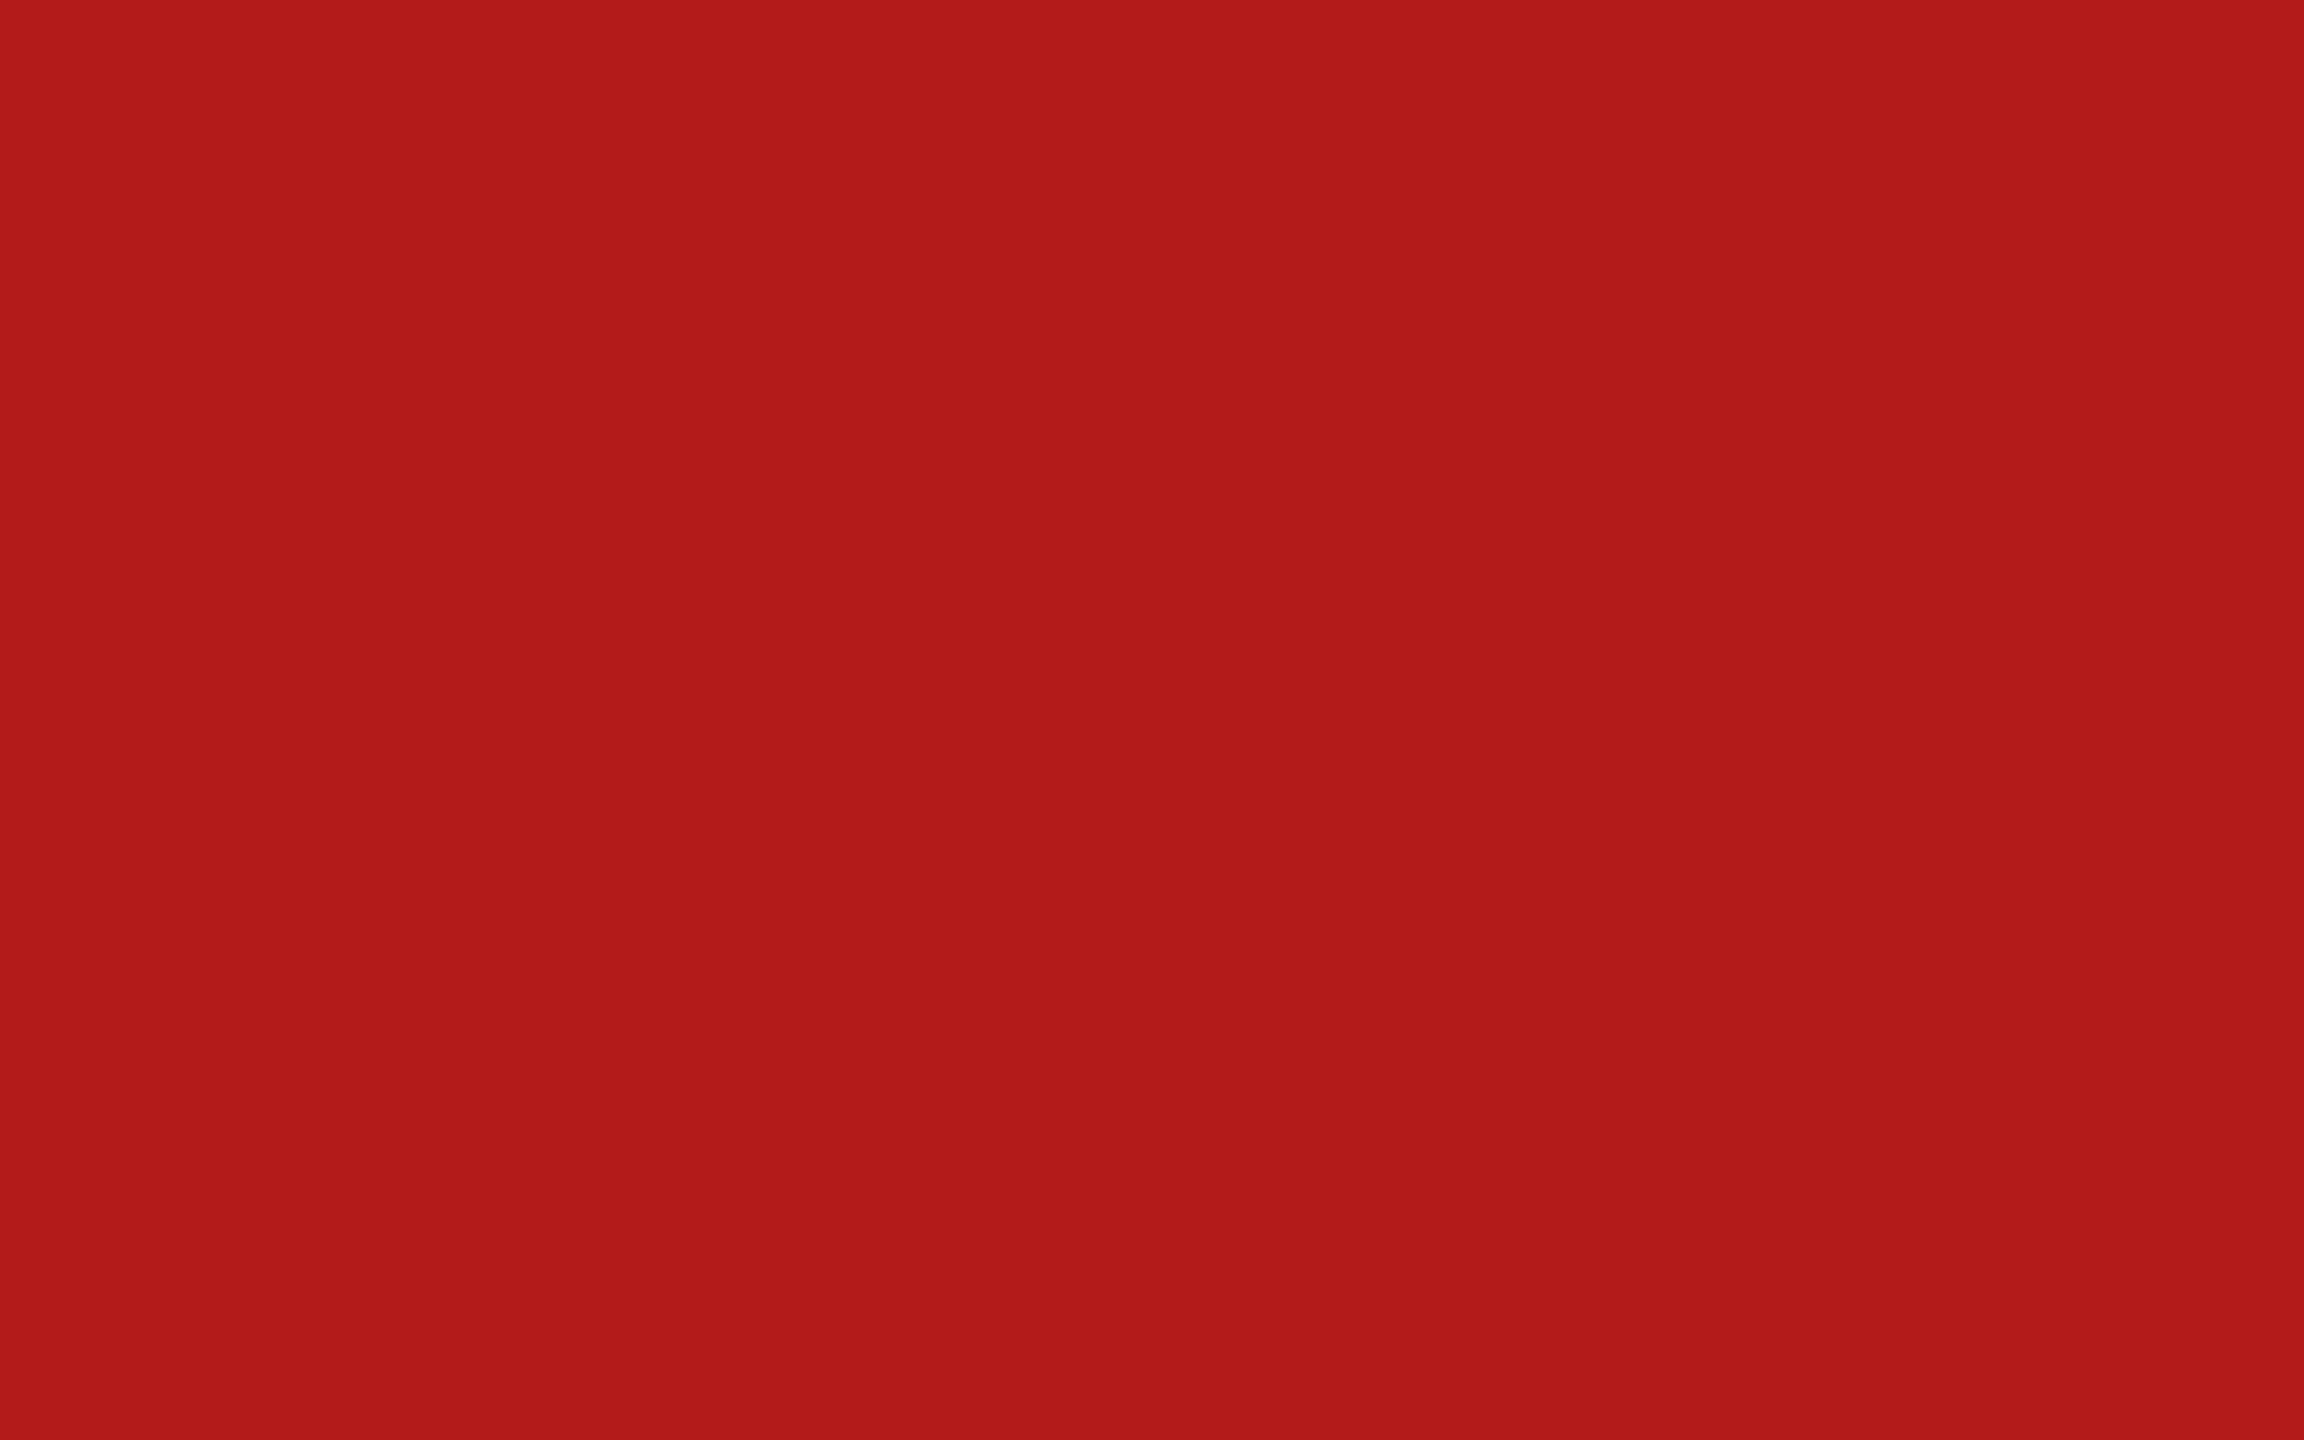 2304x1440 Cornell Red Solid Color Background